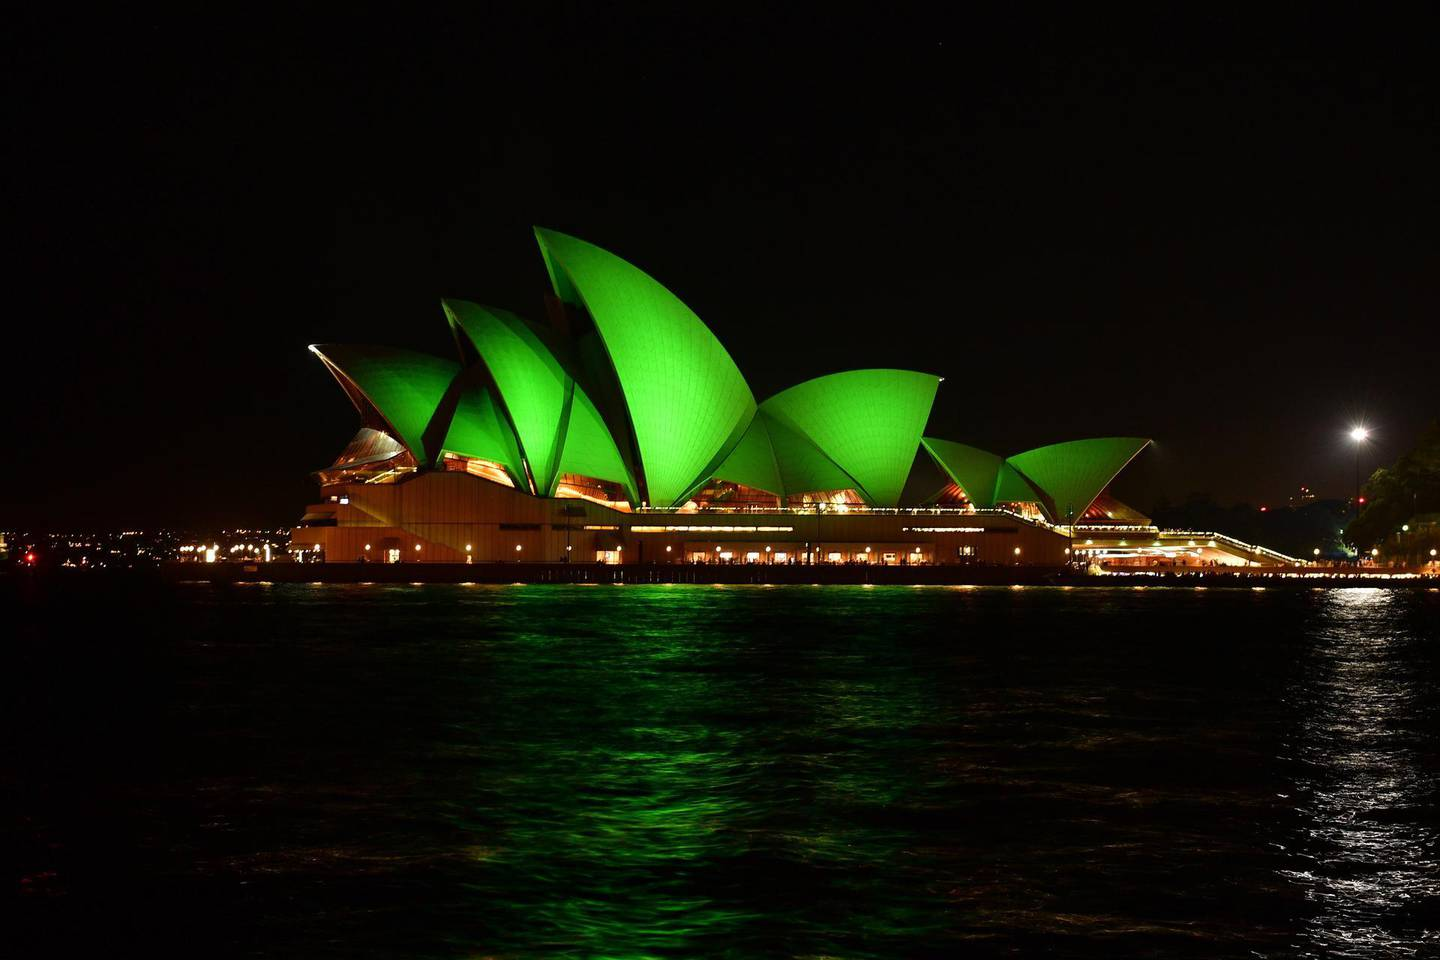 REPRO FREE17/03/2021, Sydney, Australia – Tourism Ireland's annual Global Greening initiative to mark St Patrick's Day sees hundreds of iconic landmarks and sites around the world light up in green on 17 March – keeping the island of Ireland to the fore in a positive light, on the day when people everywhere are thinking about Ireland.PIC SHOWS: The Sydney Opera House in Sydney, Australia, joins Tourism Ireland's Global Greening initiative to mark St Patrick's Day. Pic – Fiora Sacco (no repro fee)Further press info – Niamh Doherty, Tourism Ireland 085-856 6429